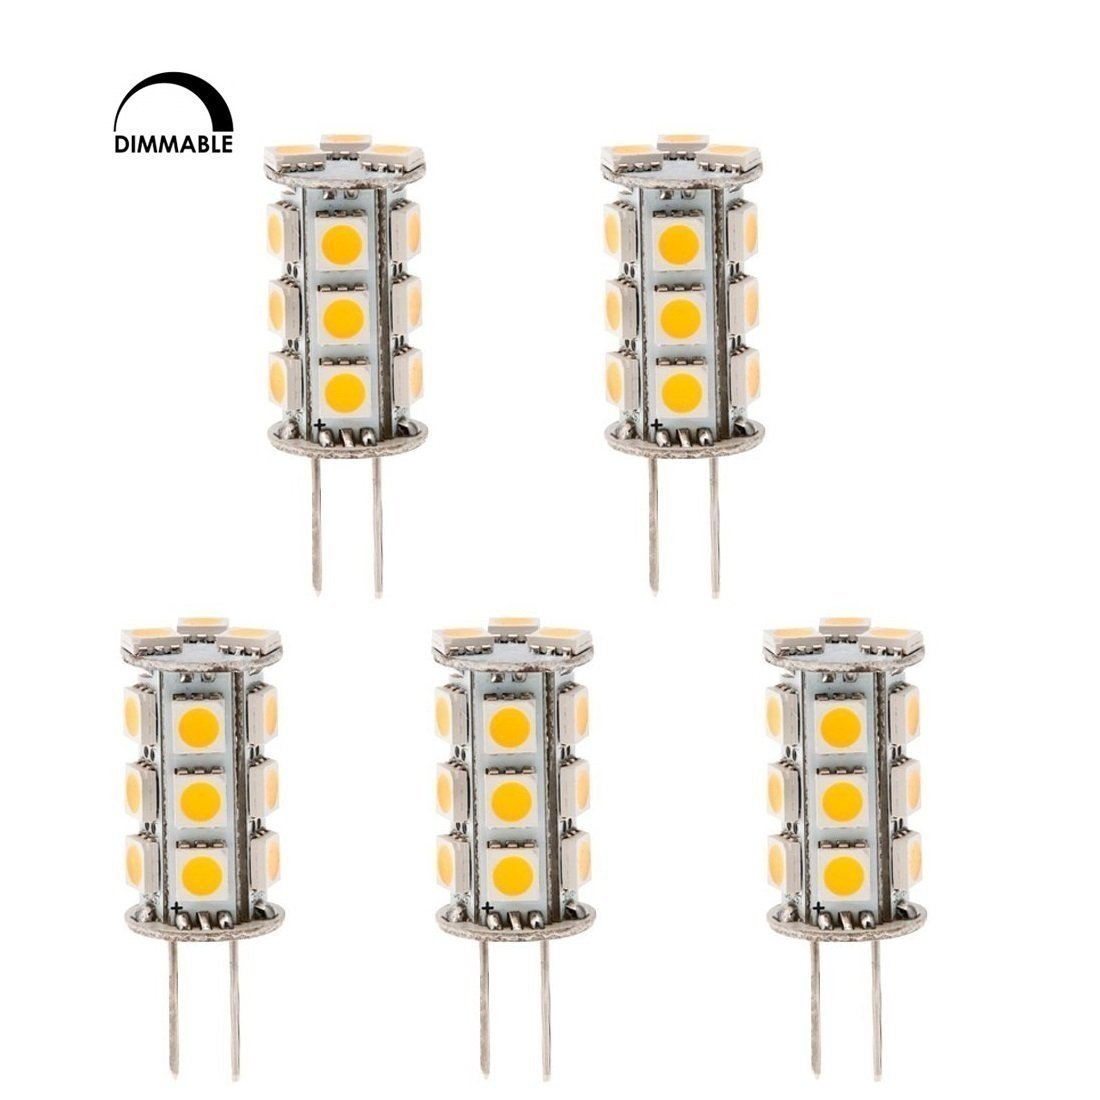 HERO-LED DTG6-18T-DW Dimmable Back Pin Tower GY6.35 Low Voltage 12V LED Halogen Replacement Bulb, 2.5W, 20-25W Equal, Daylight White 5000K, 5-Pack